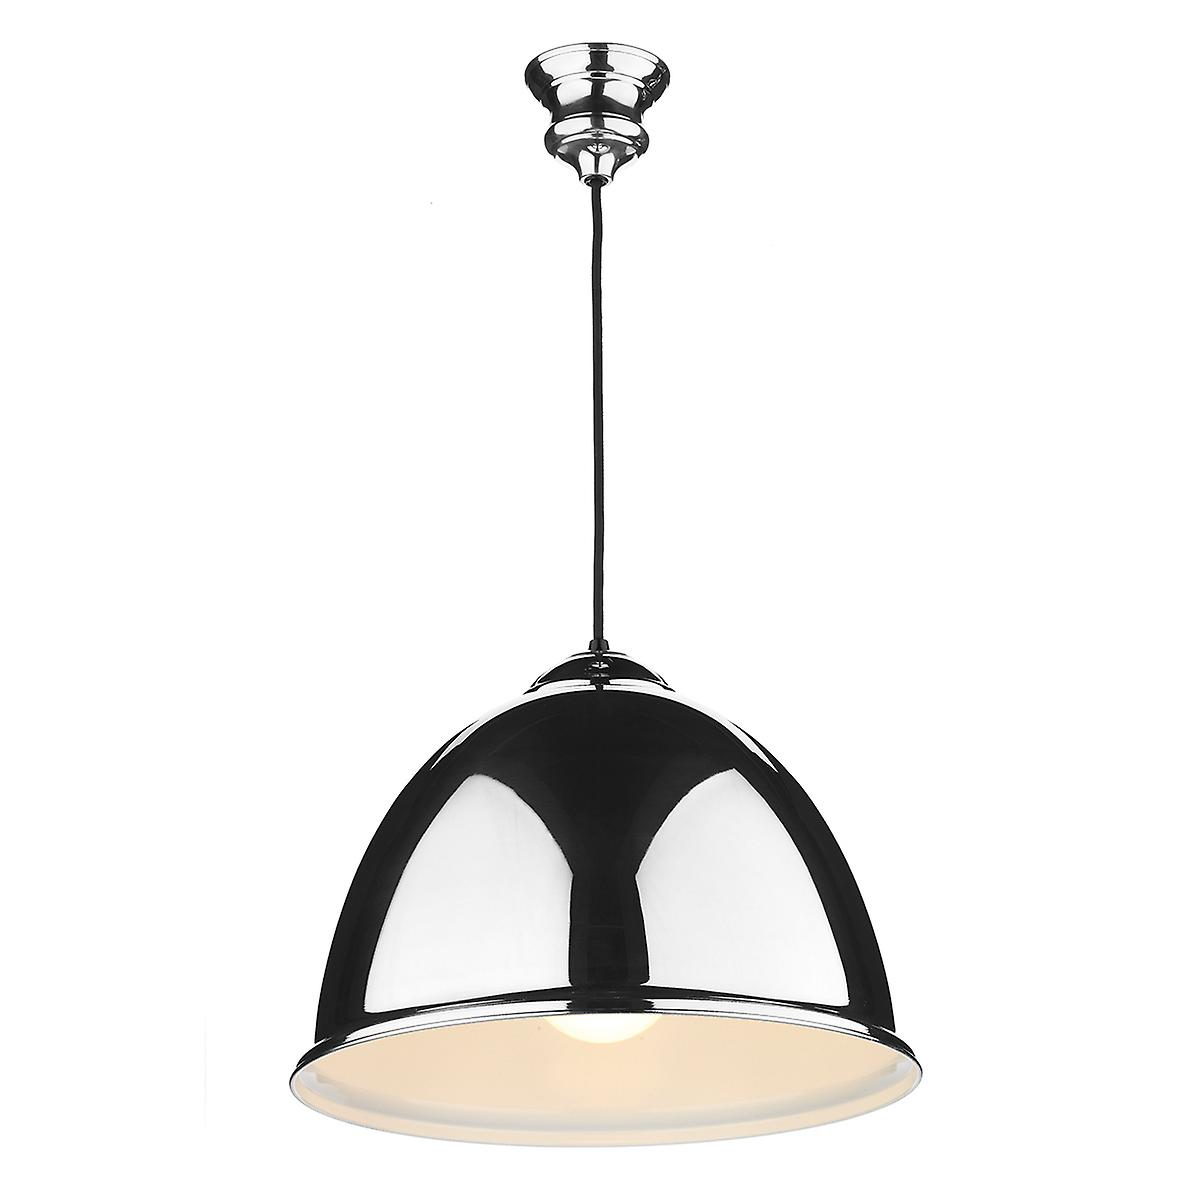 David Hunt EUS0122 Euston Single Light Polished Chrome Pendant With Black Cable